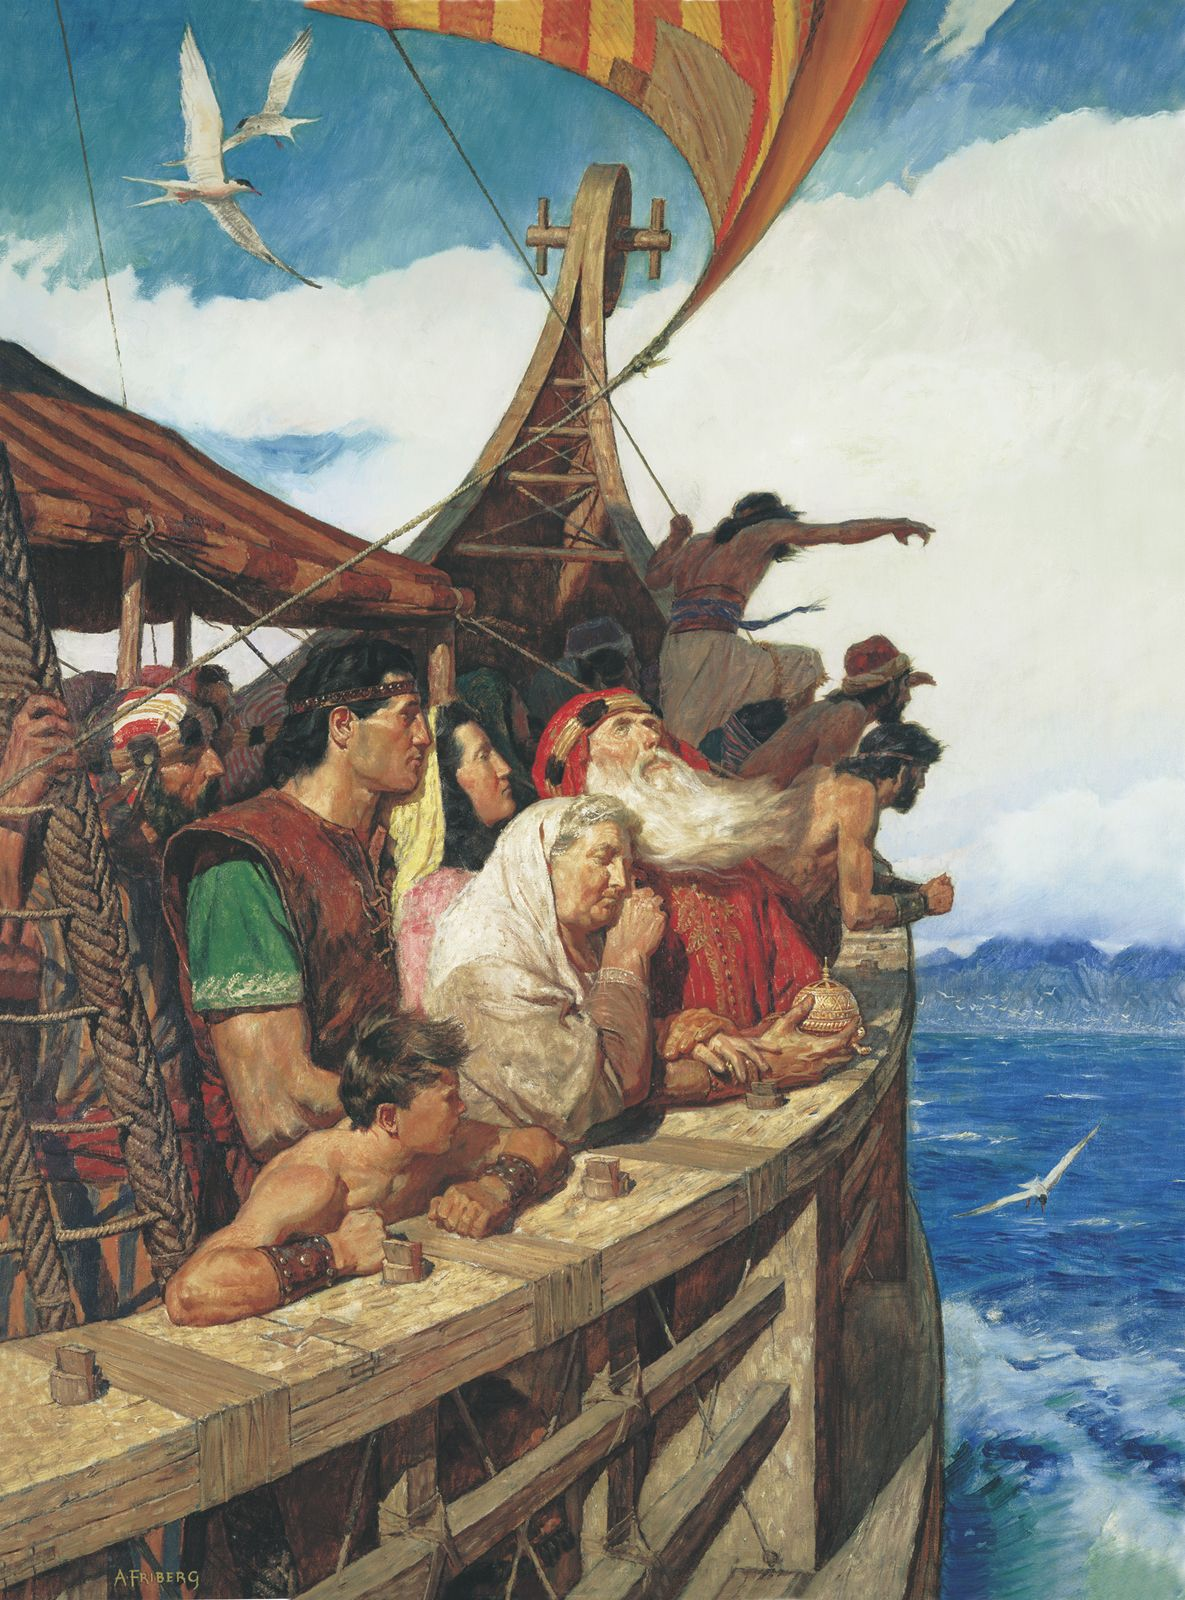 Lehi and his family from the Book of Mormon sail to the promised land